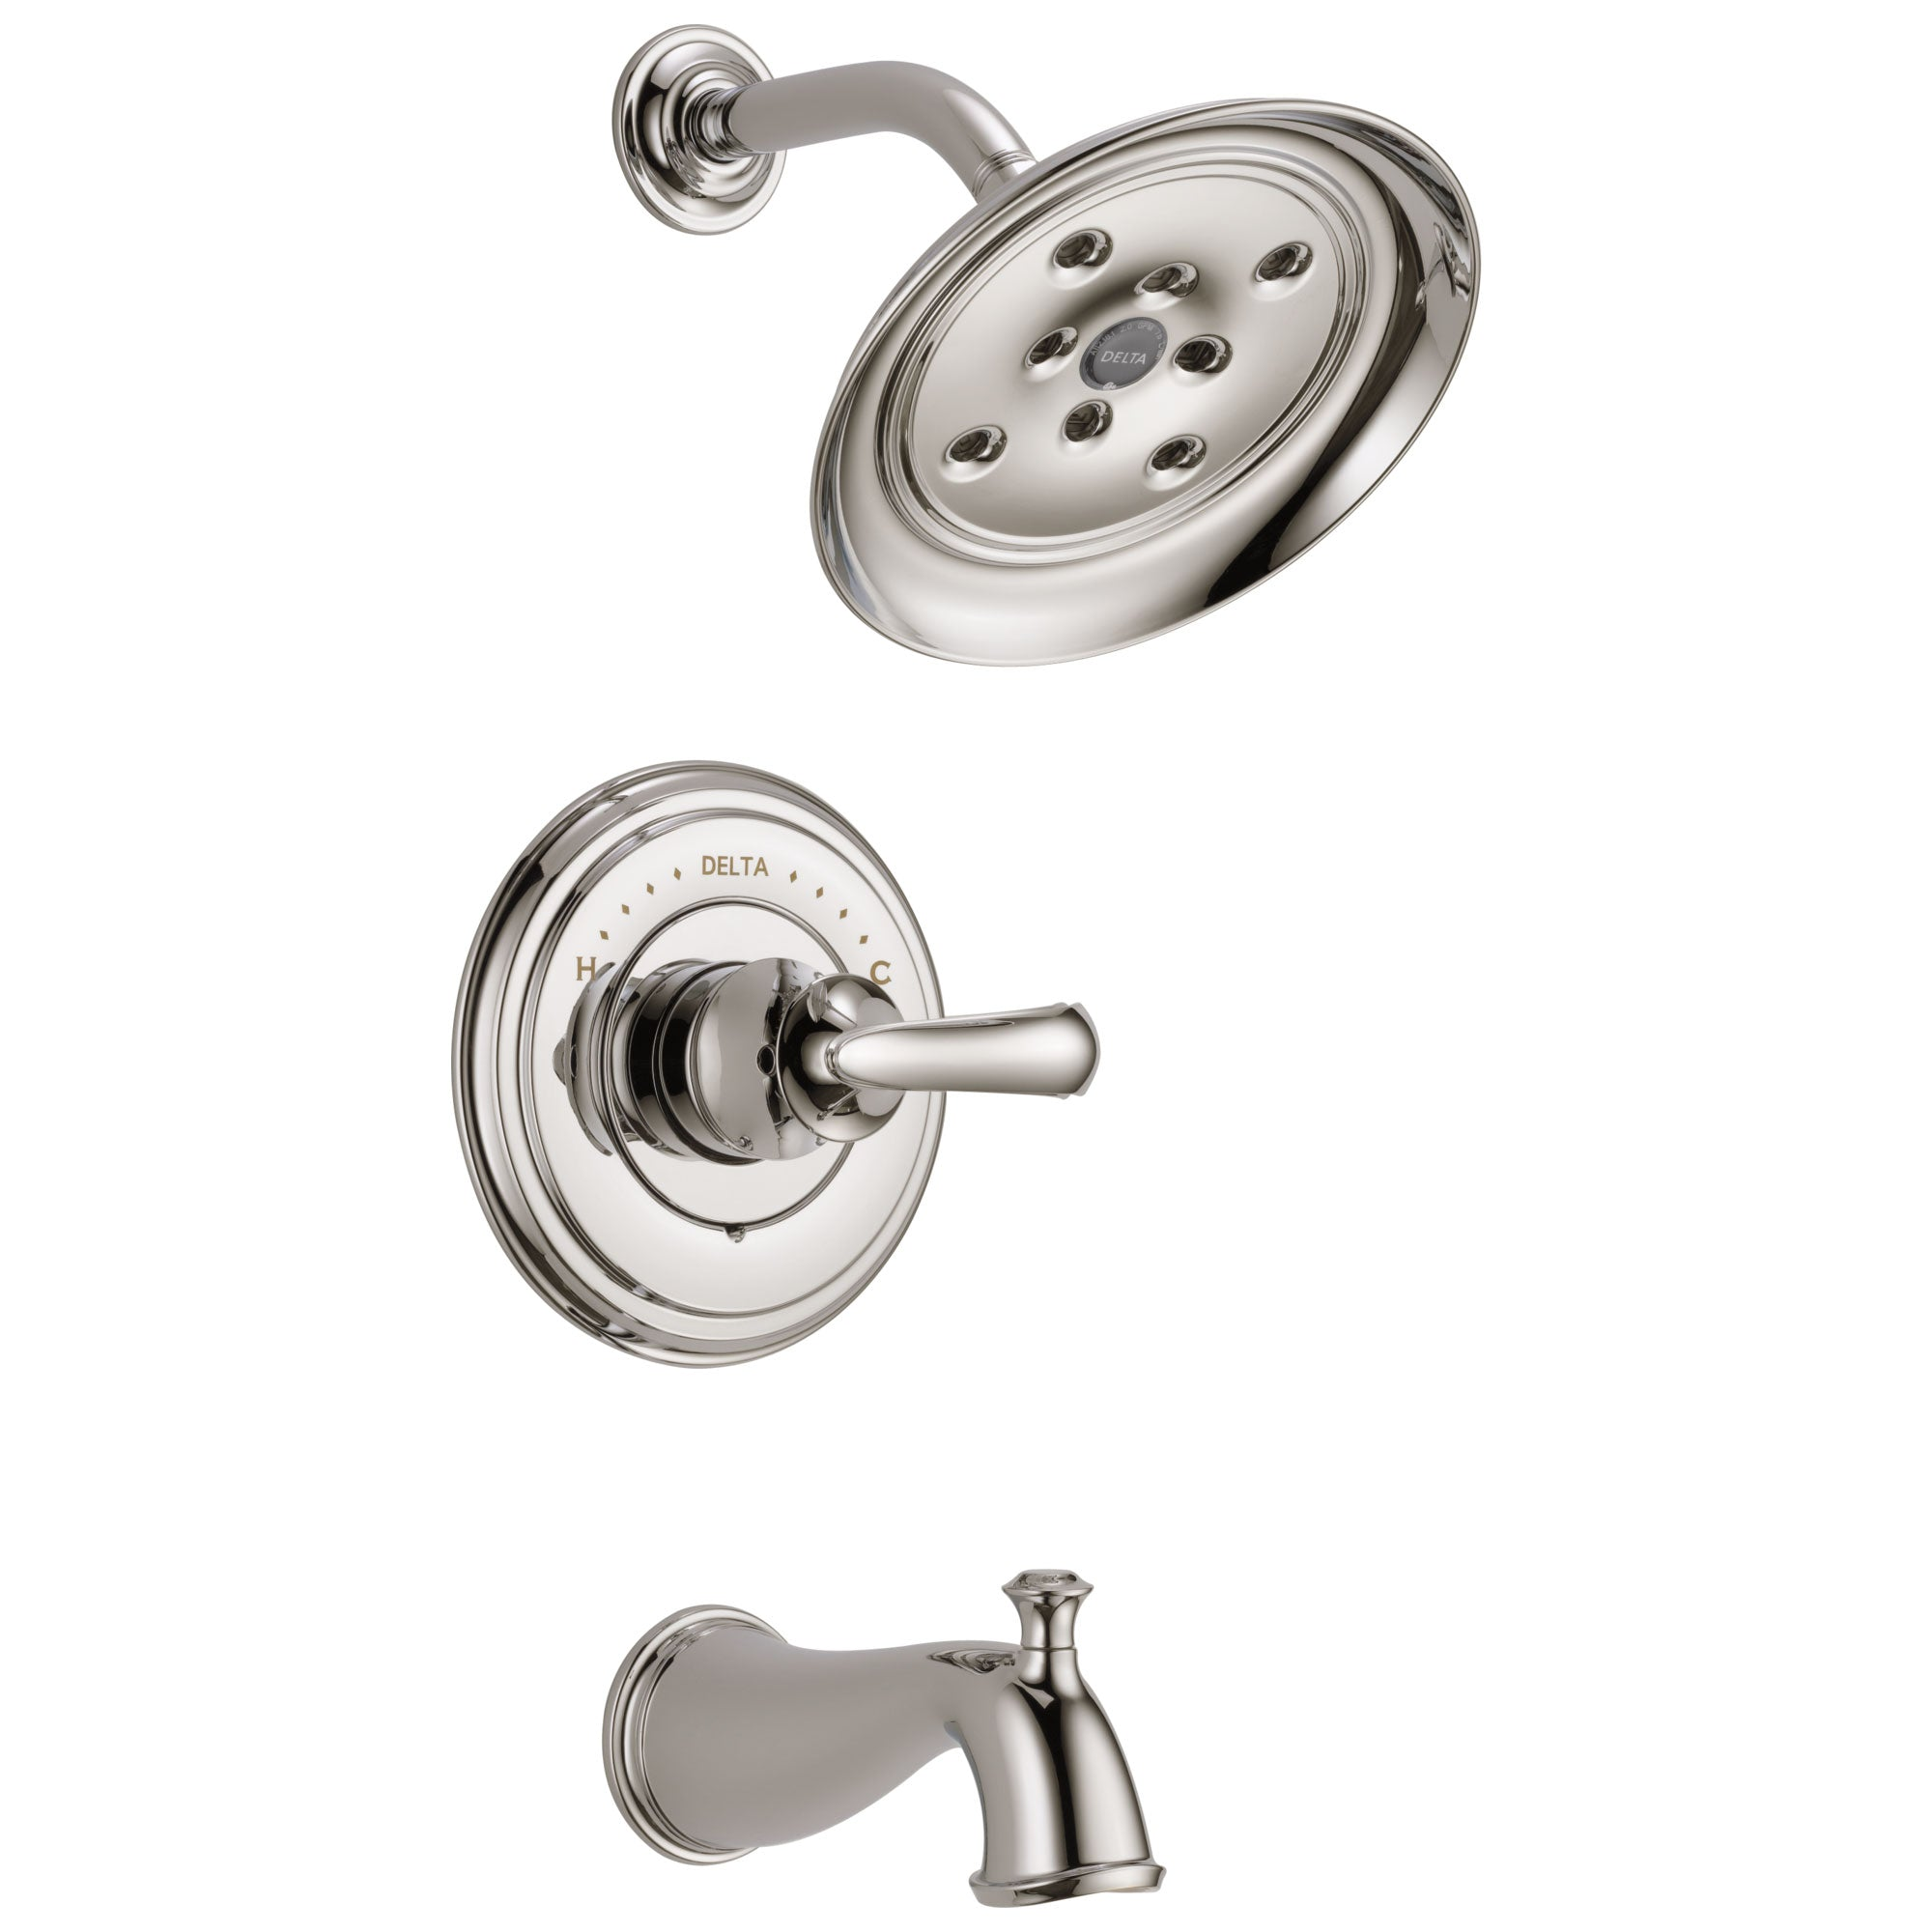 Delta Cassidy Collection Polished Nickel Monitor 14 Tub and Shower Faucet Combination INCLUDES Single French Curve Handle and Rough-Valve without Stops D1478V